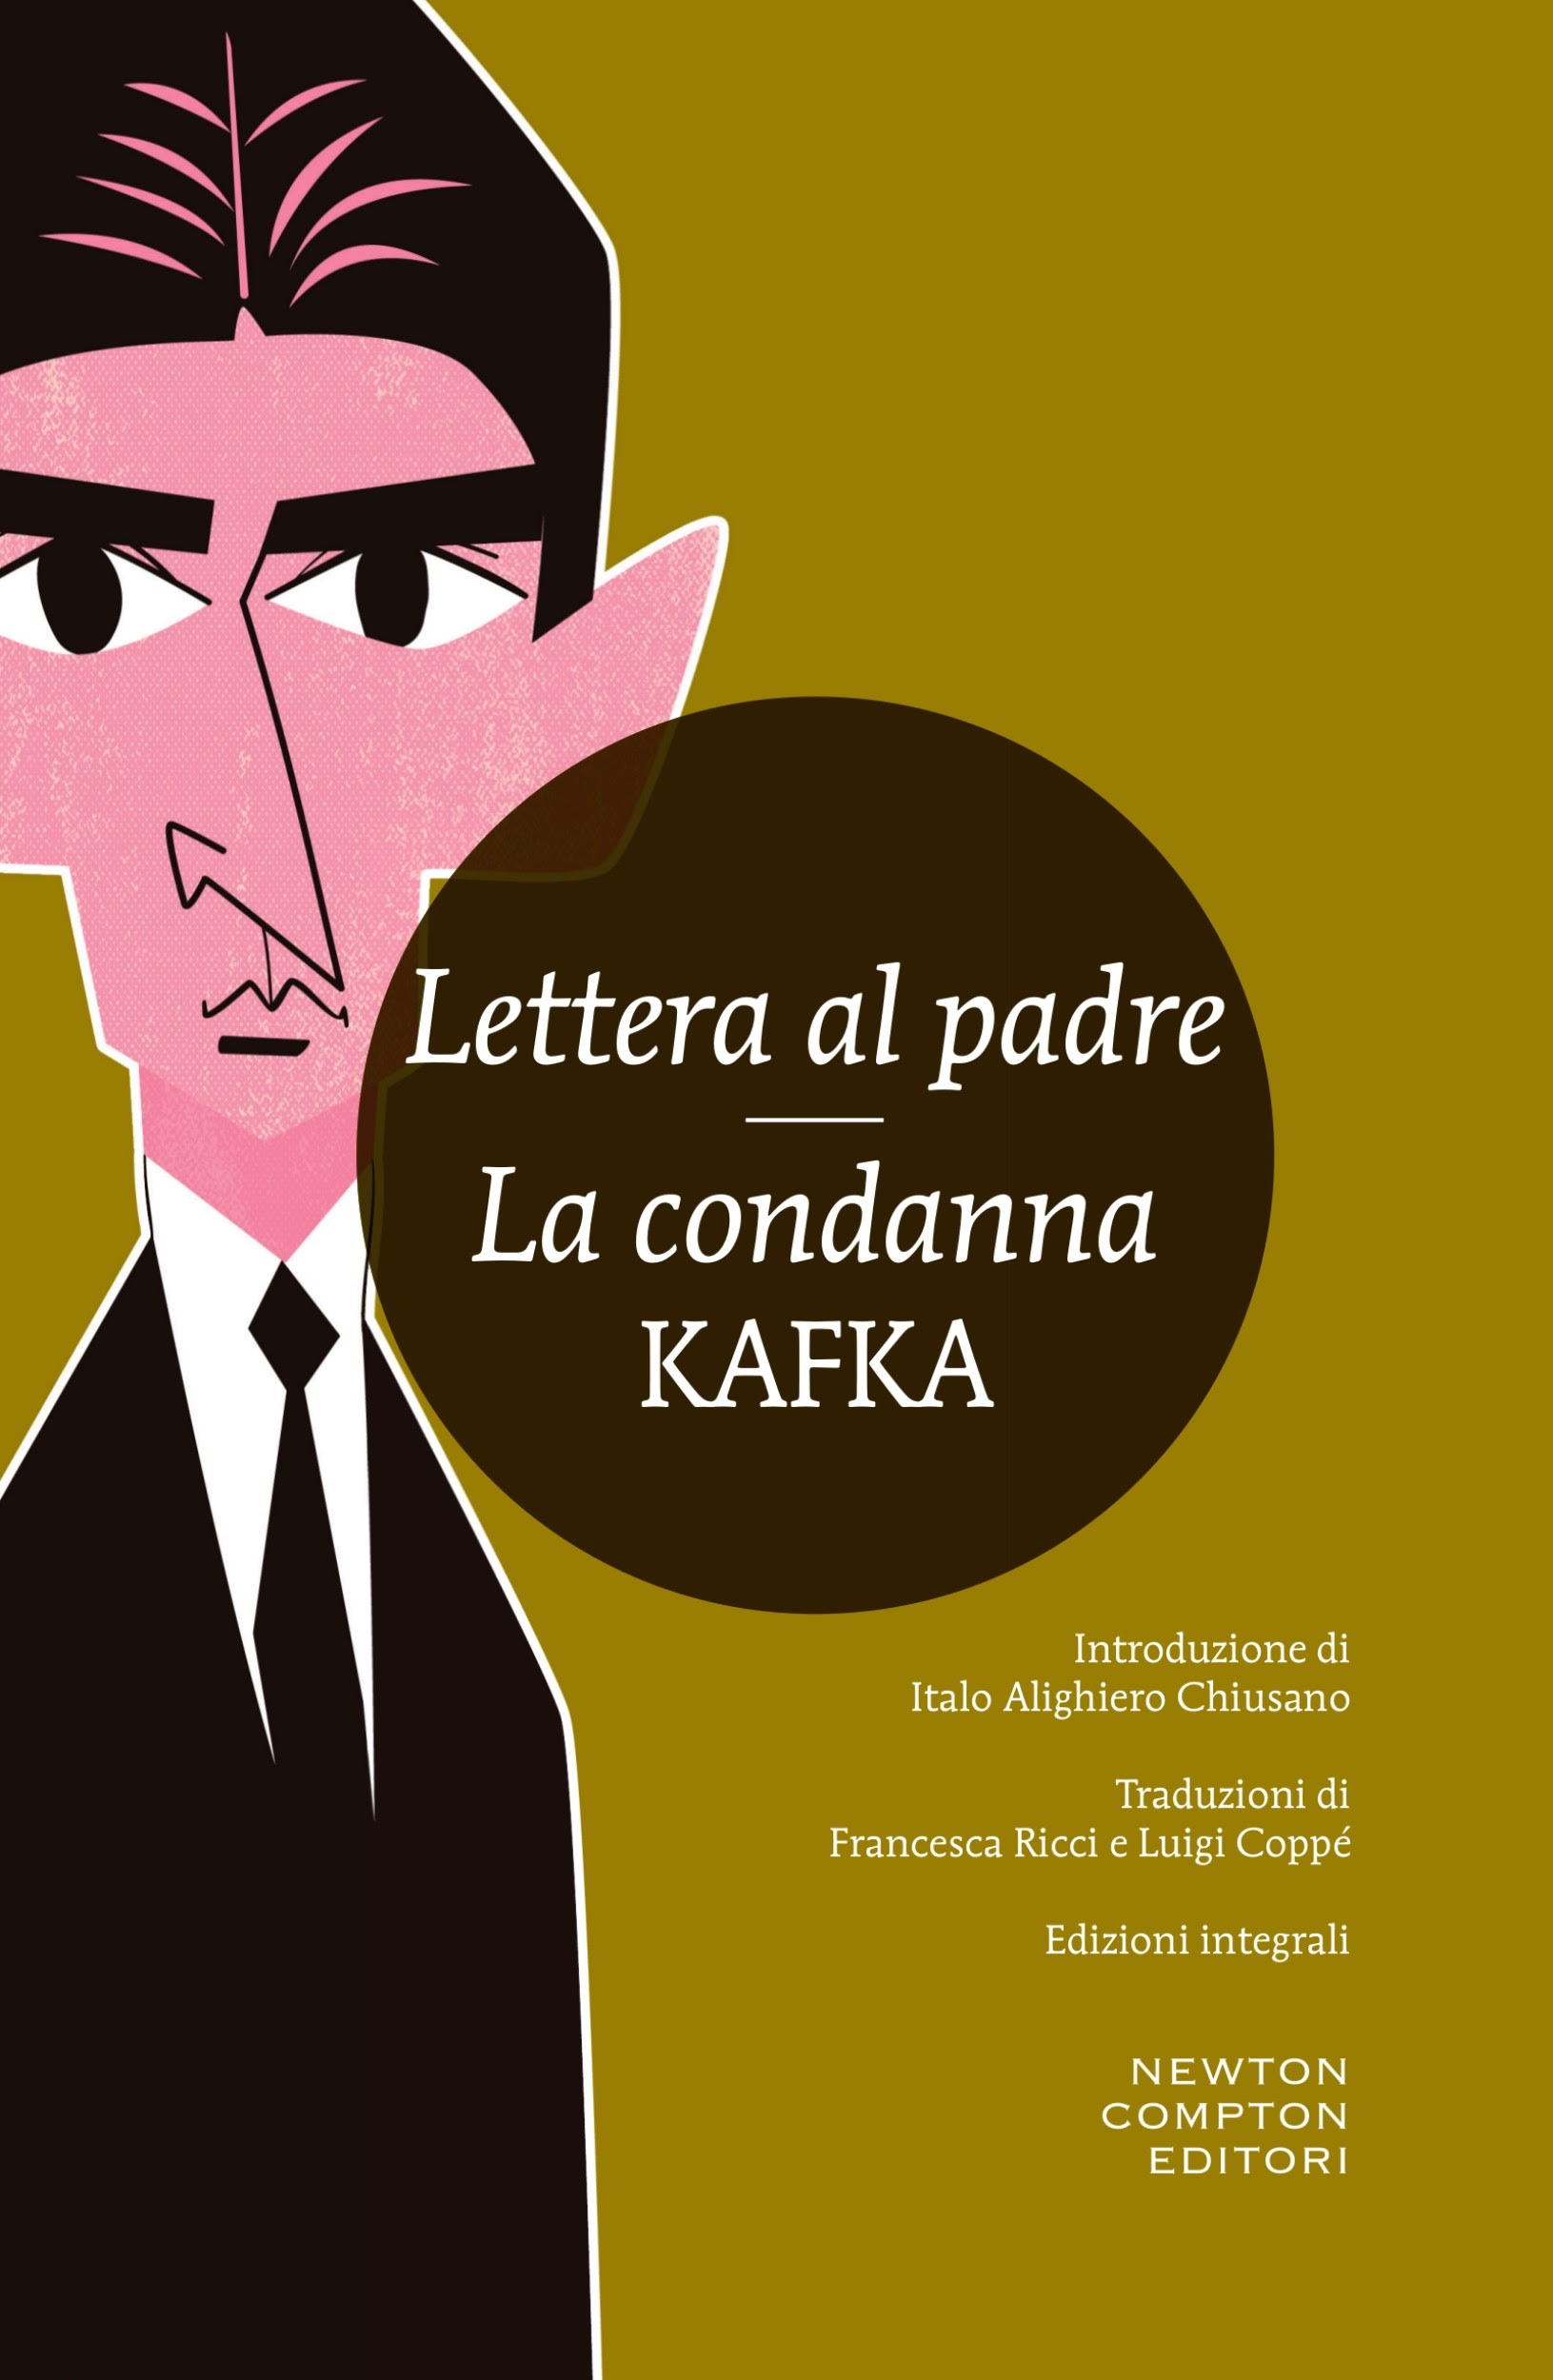 http://alessandria.bookrepublic.it/api/books/9788854130852/cover